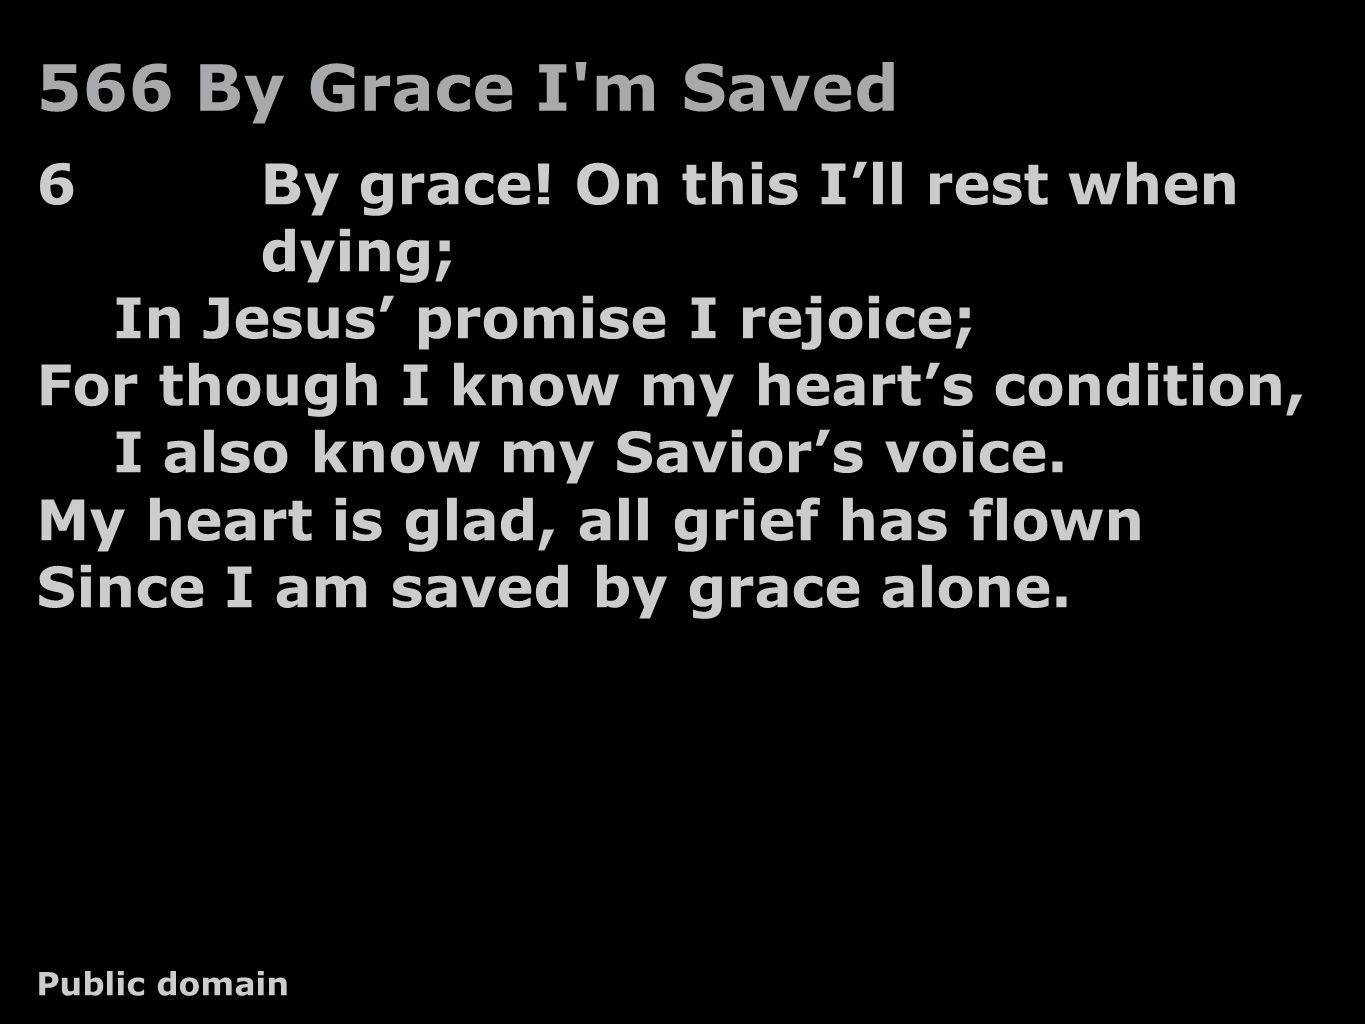 566 By Grace I'm Saved 6By grace! On this I'll rest when dying; In Jesus' promise I rejoice; For though I know my heart's condition, I also know my Sa